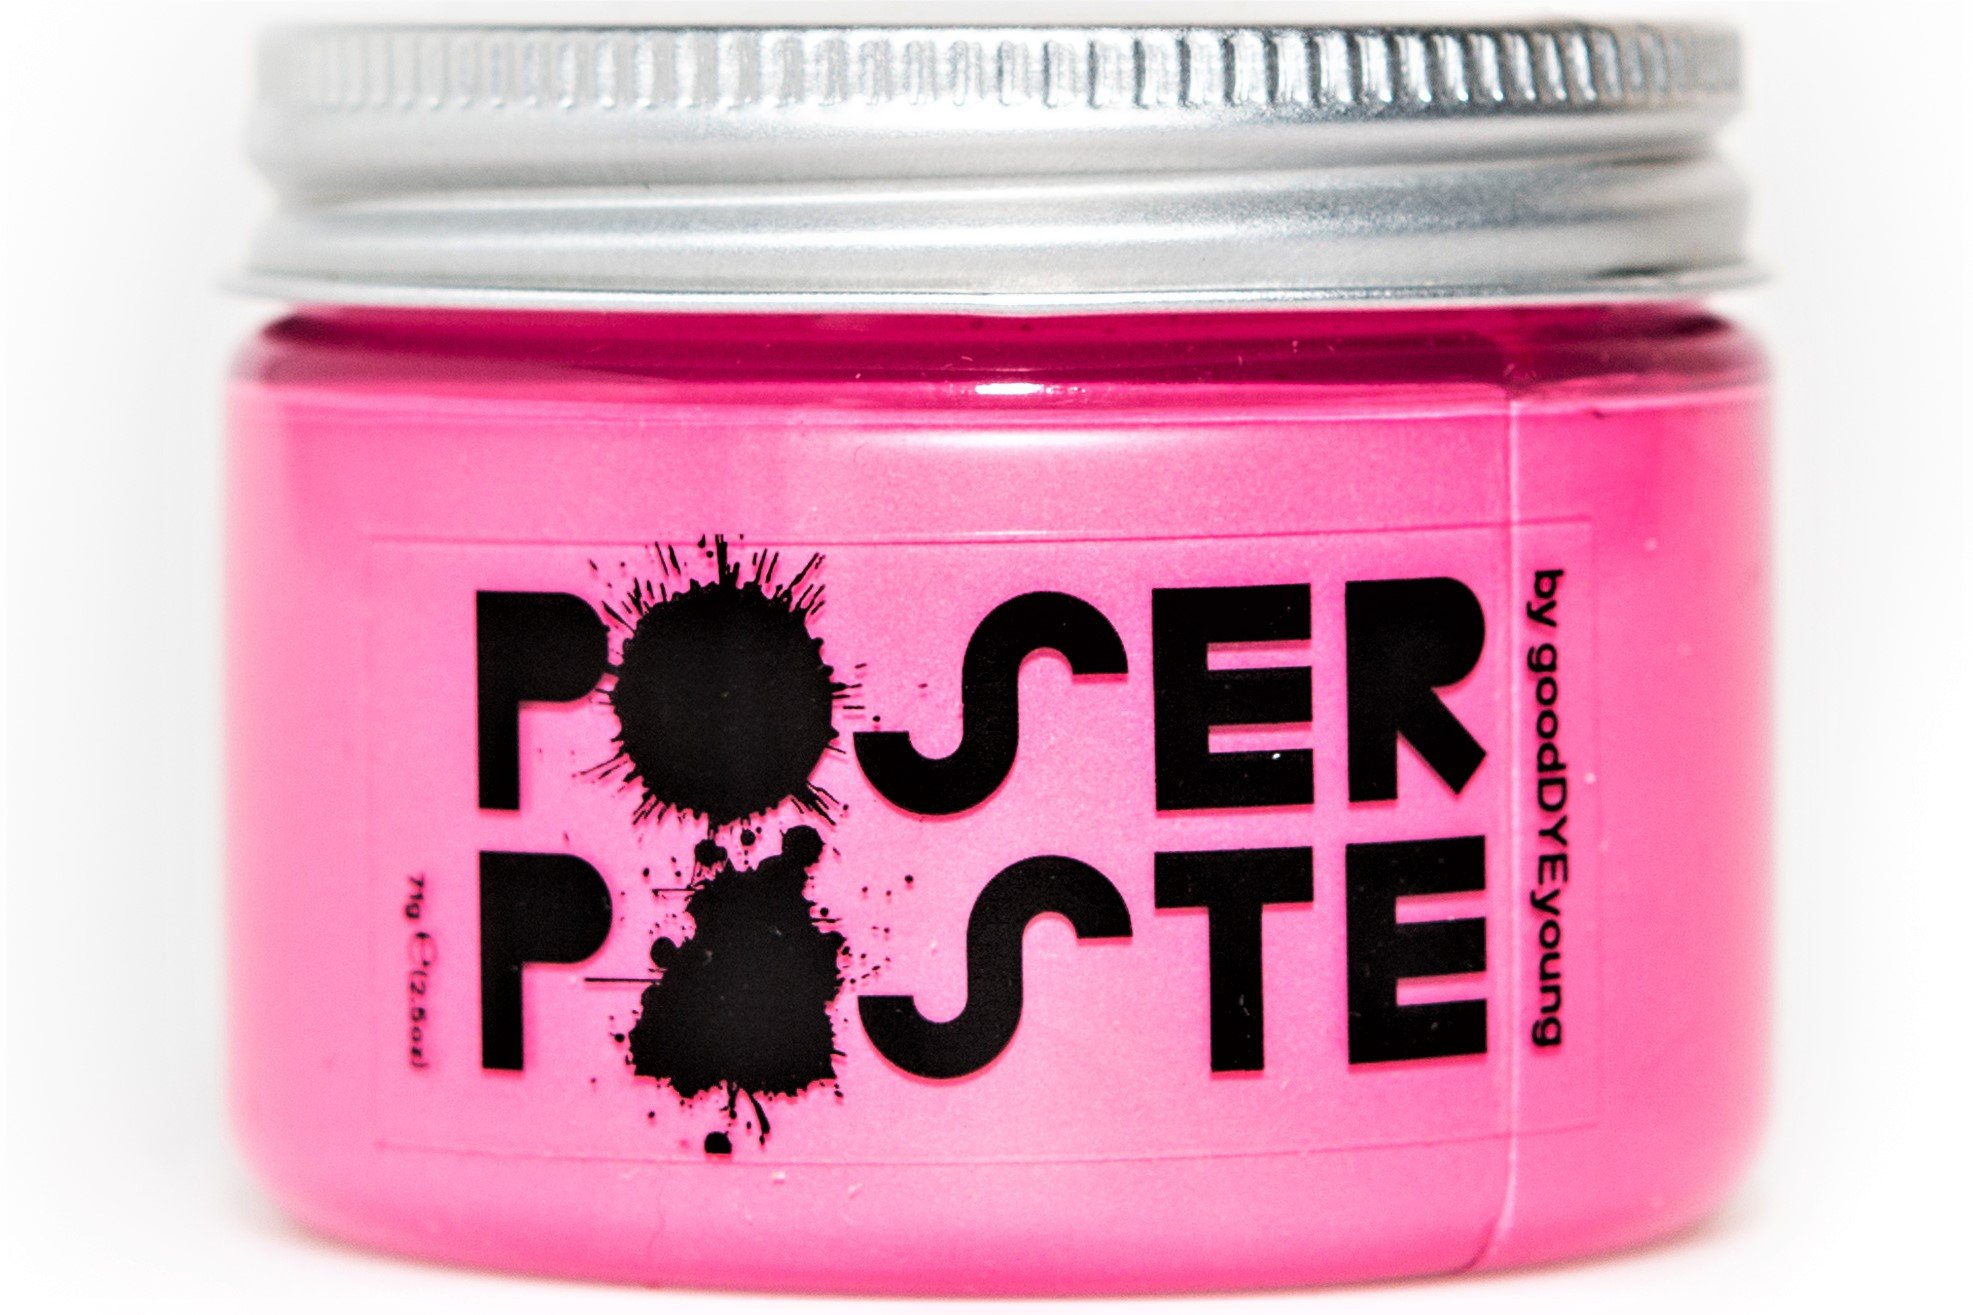 Good Dye Young Poser Paste Hair Makeup (temp hair color) (EX-GIRL PINK) 2.5oz by Good Dye Young